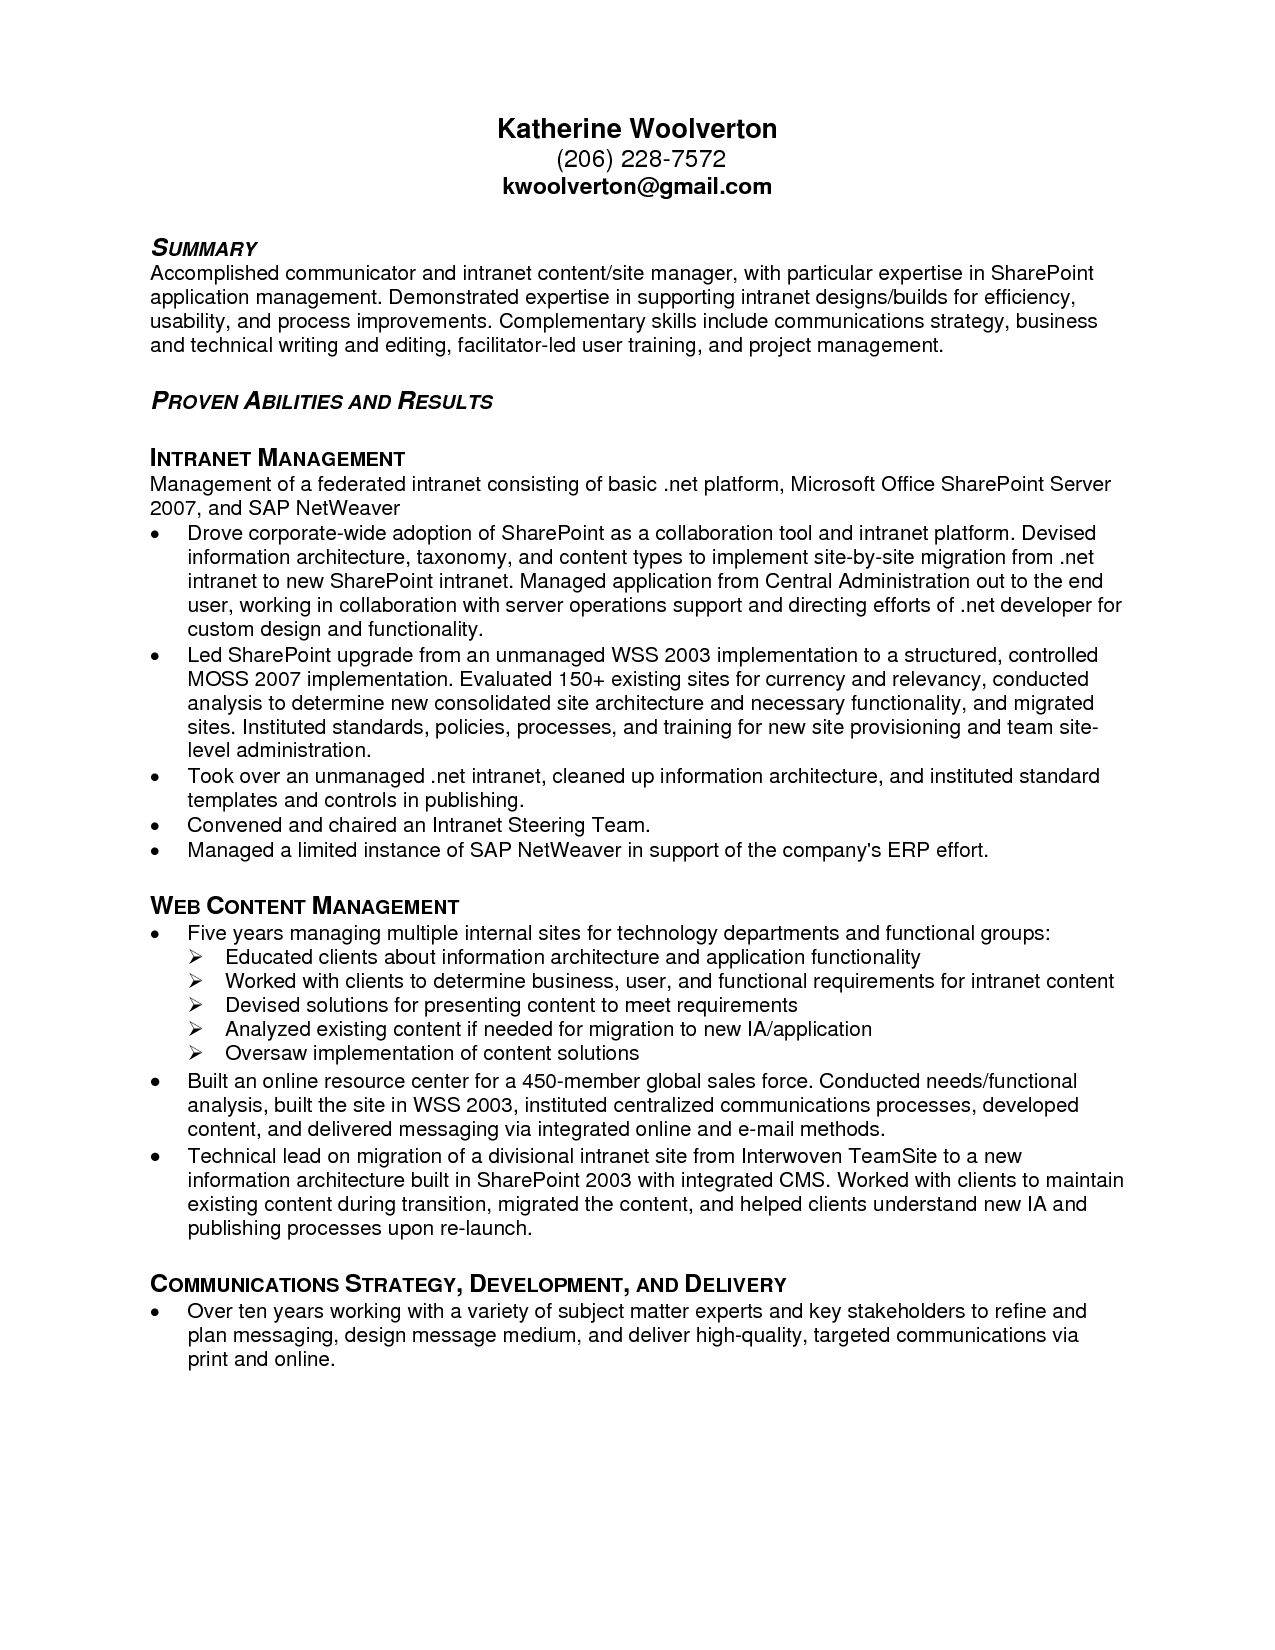 Microsoft Office Templates Resume Amusing Resume Examples Microsoft Office Templates For Word The Eform